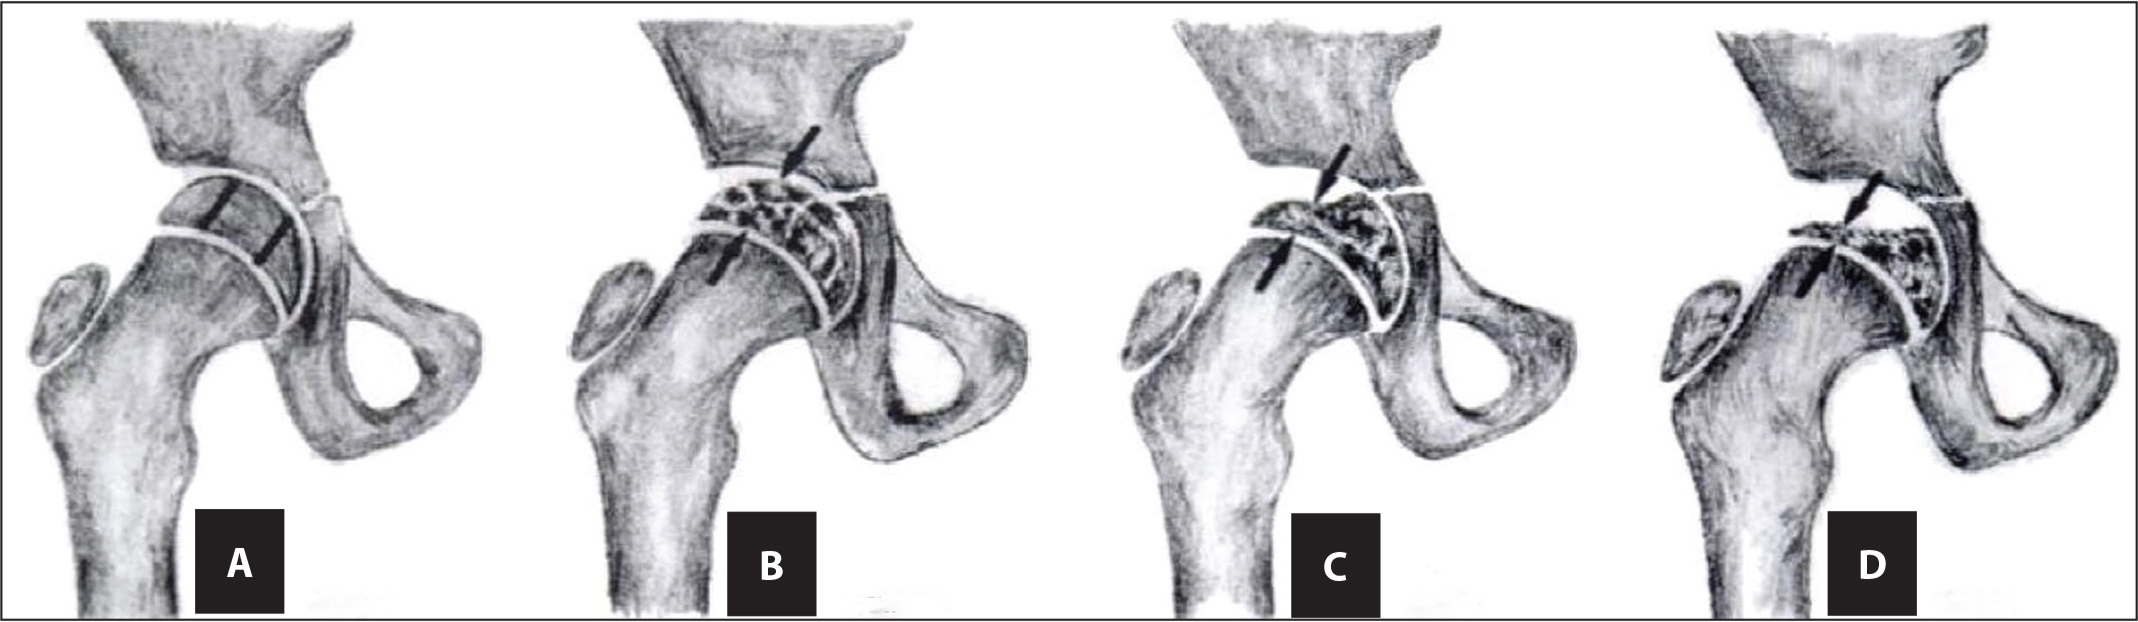 Herring classification of the femoral head. (A) Normal femoral head. (B) Group A: no loss of height. (C) Group B: between 0% and 50% loss of height. (D) More than 50% loss of height. Reprinted with permission from Farsetti et al.11